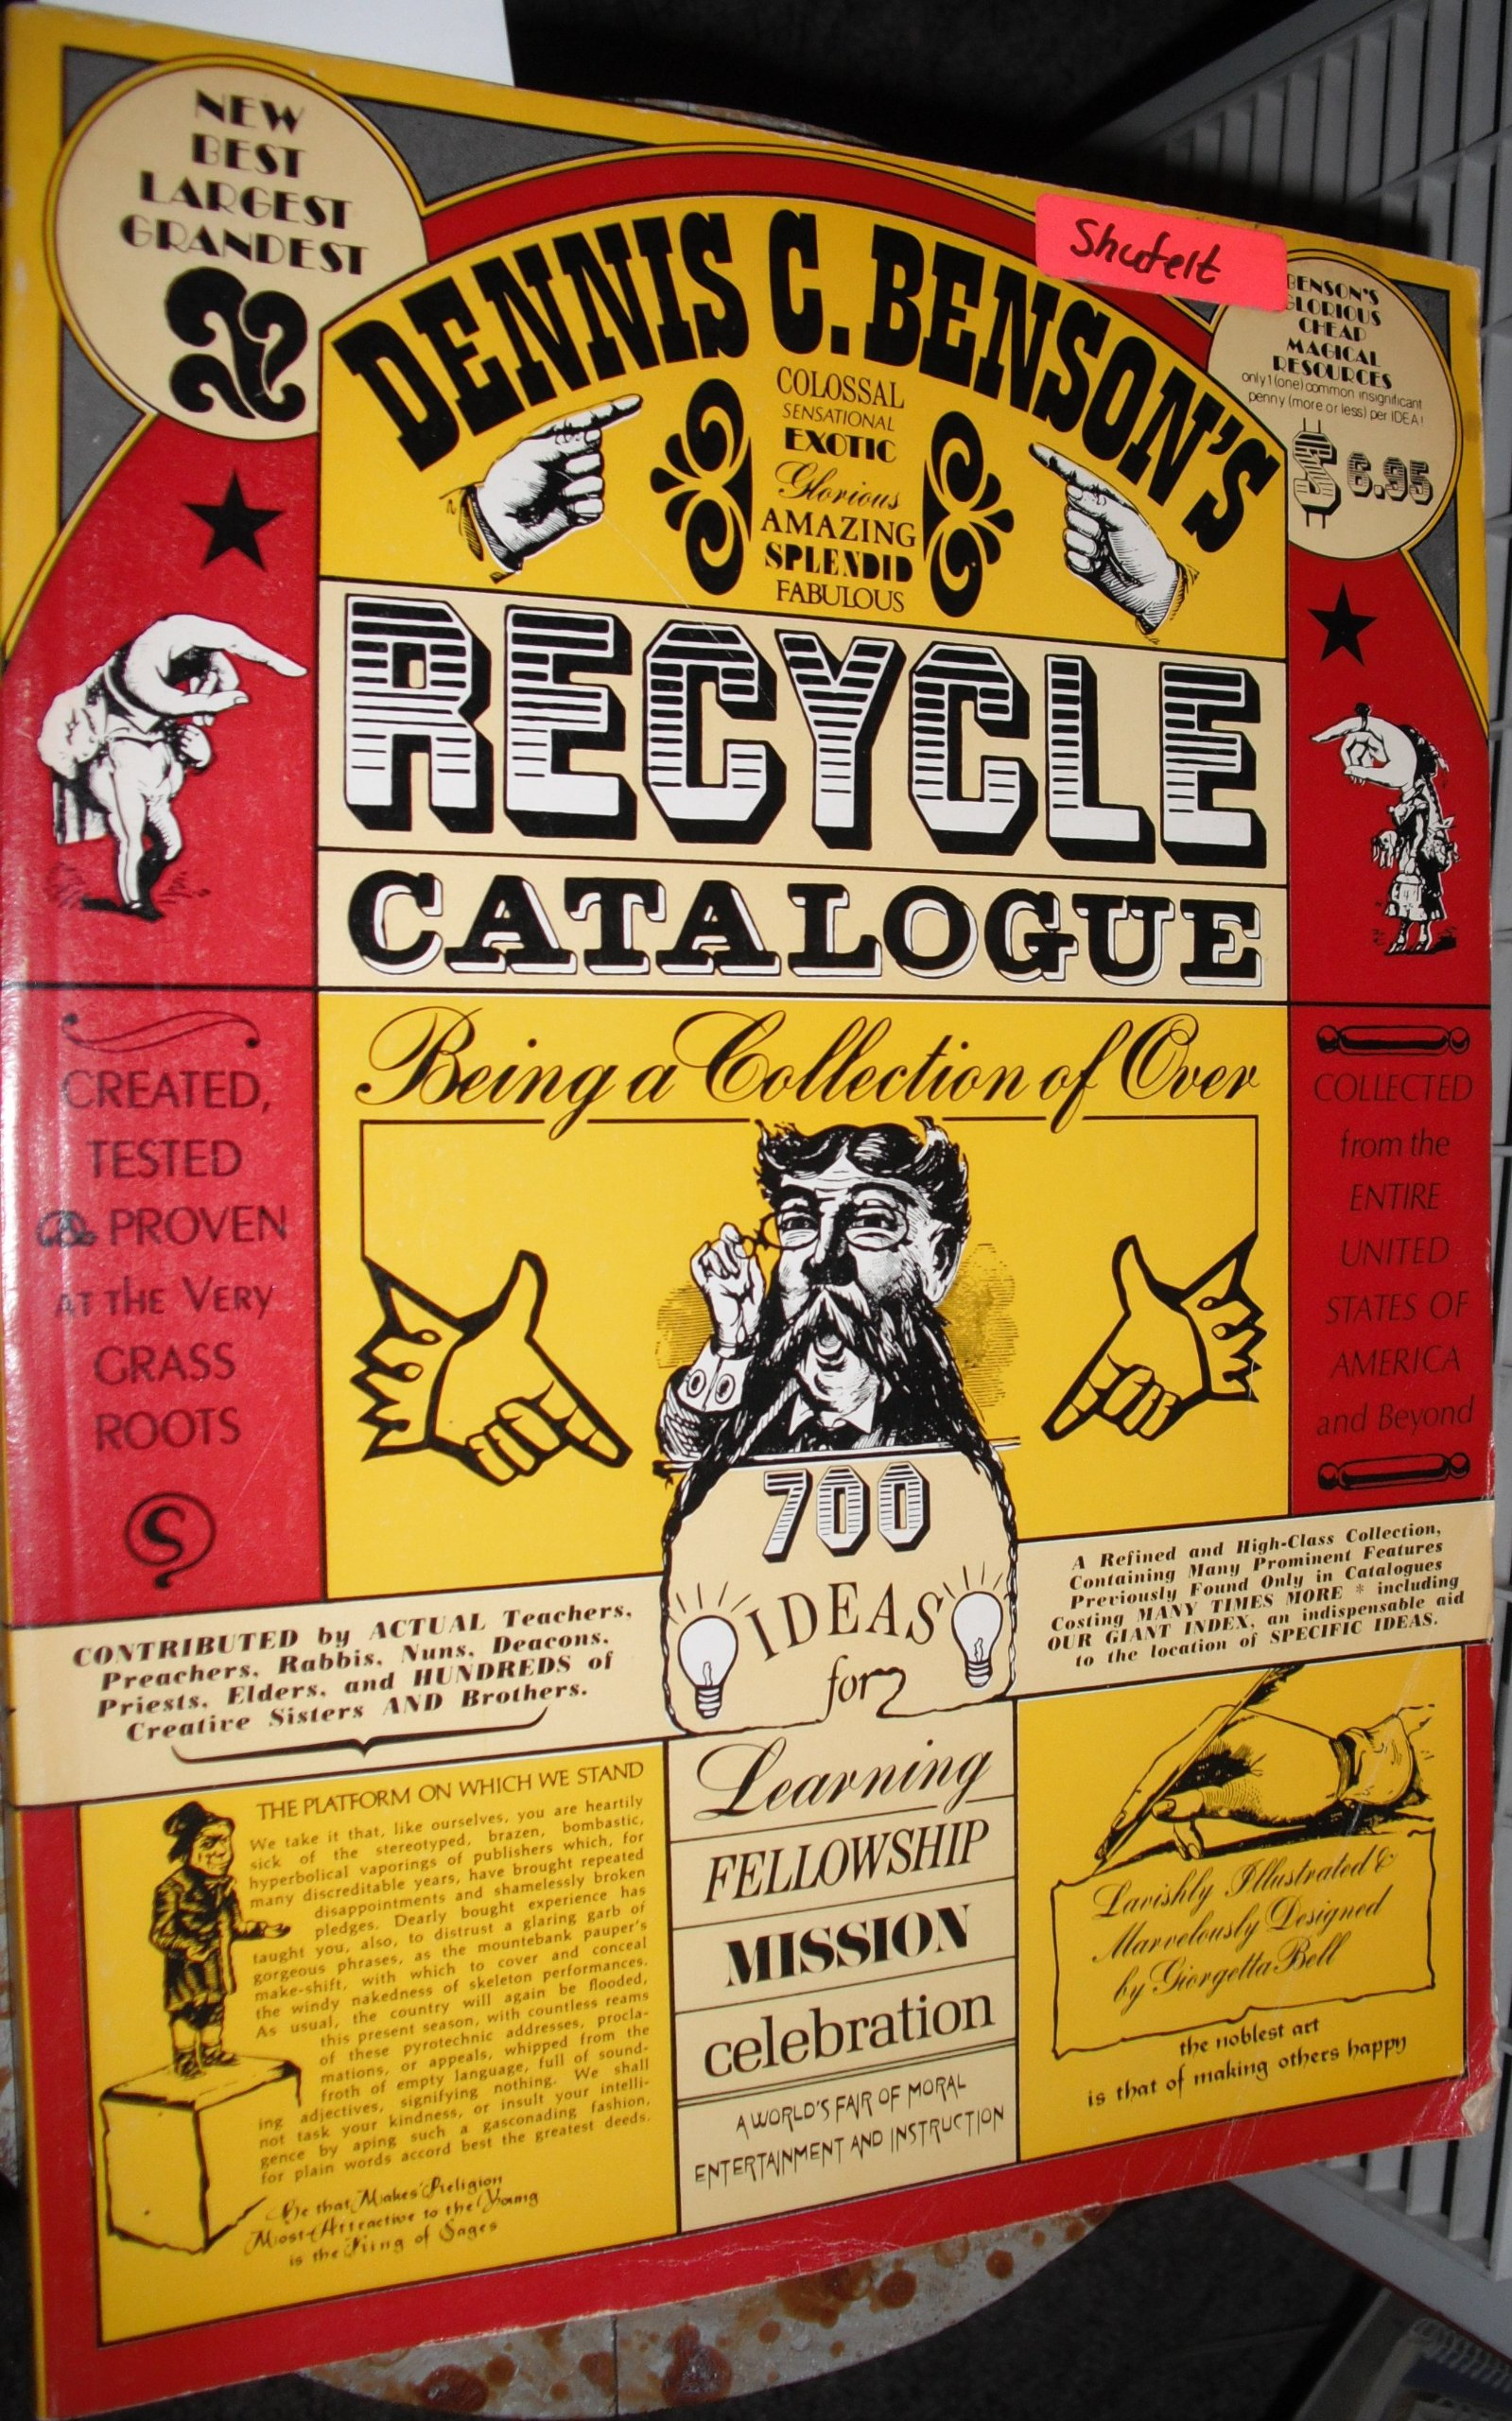 Dennis C. Benson's Recycle catalogue, Benson, Dennis C